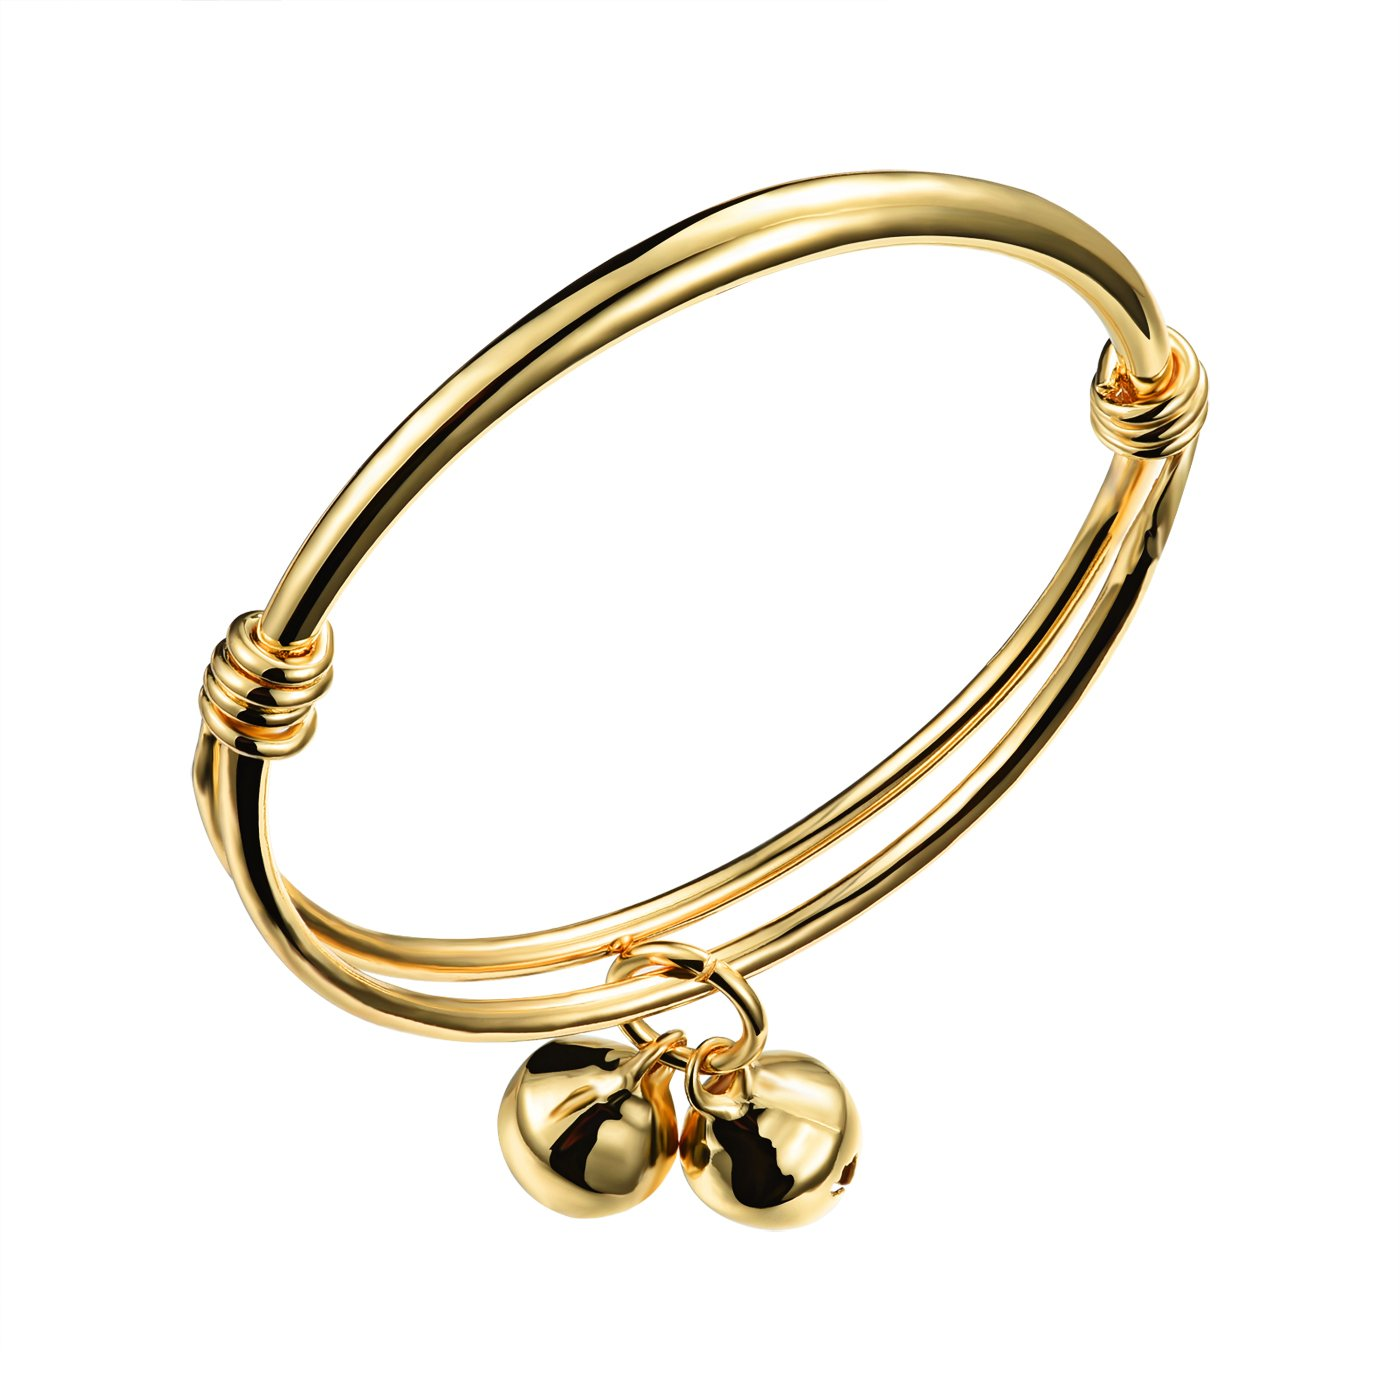 Gold Plated Small Bell Charms Bracelet Bangle For Unisex Baby Children Cute Gift Adjustable 4.7 - 5.9 Felicelia B0722ZPRQG_US